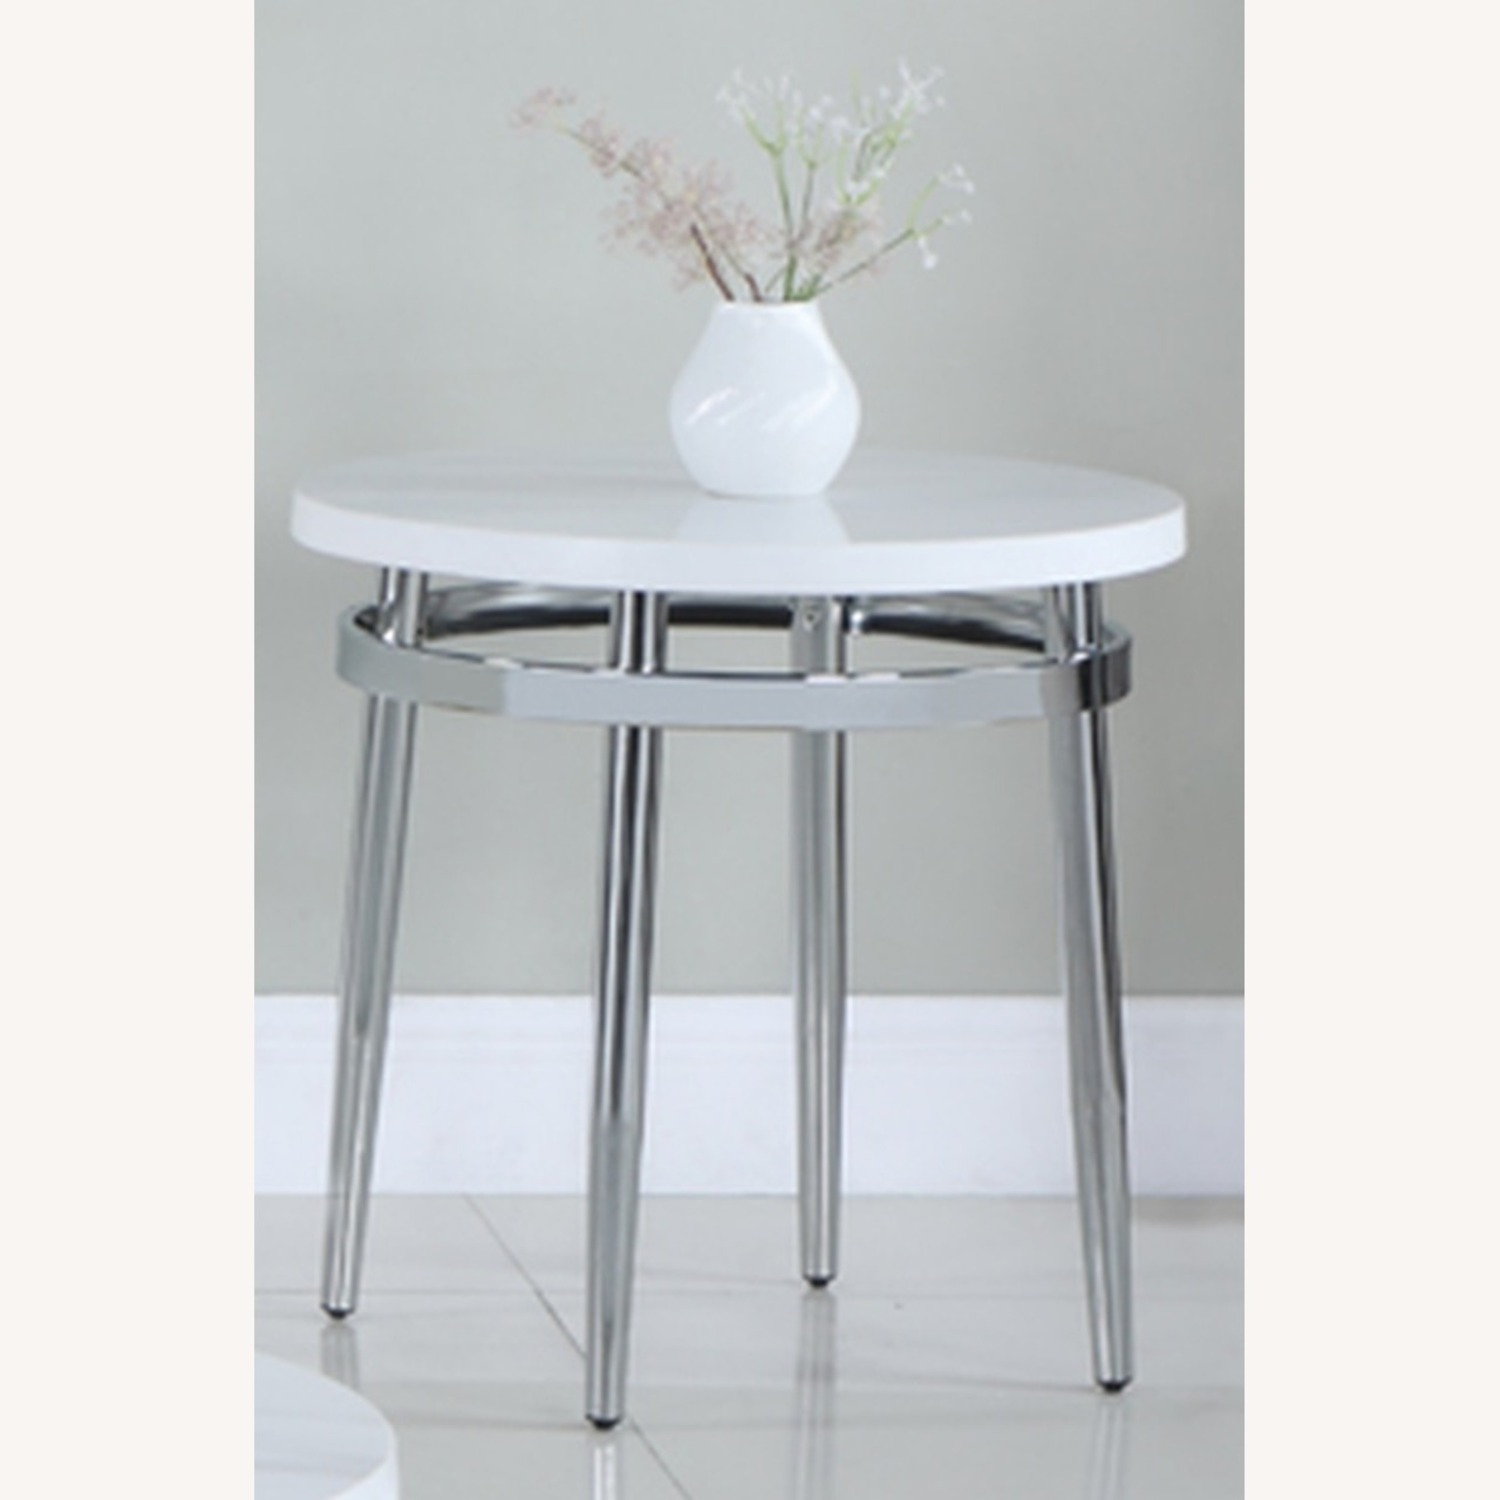 End Table In Faux Carrara Marble Top - image-1